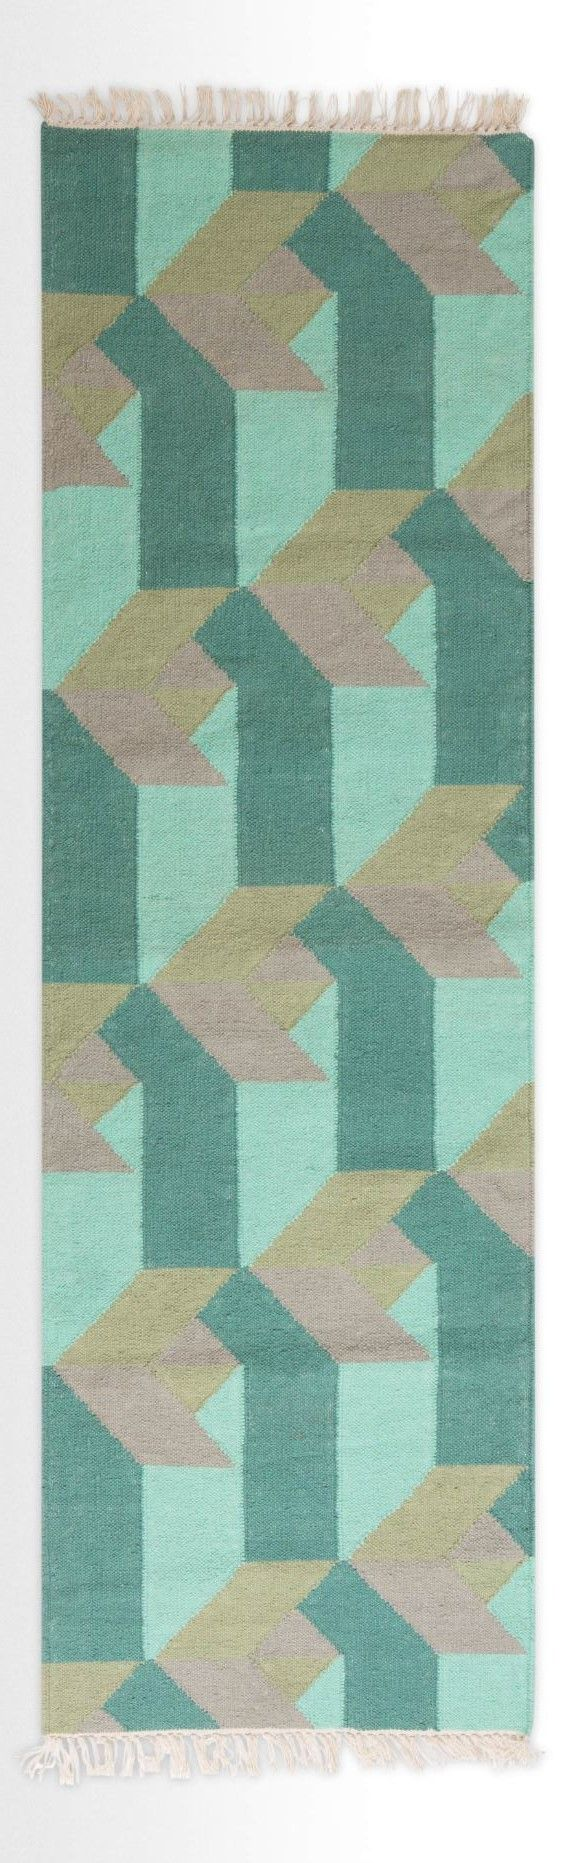 Sea green runner rug, MADE.COM Designed by Jean-Pierre Brown, this cotton rug…